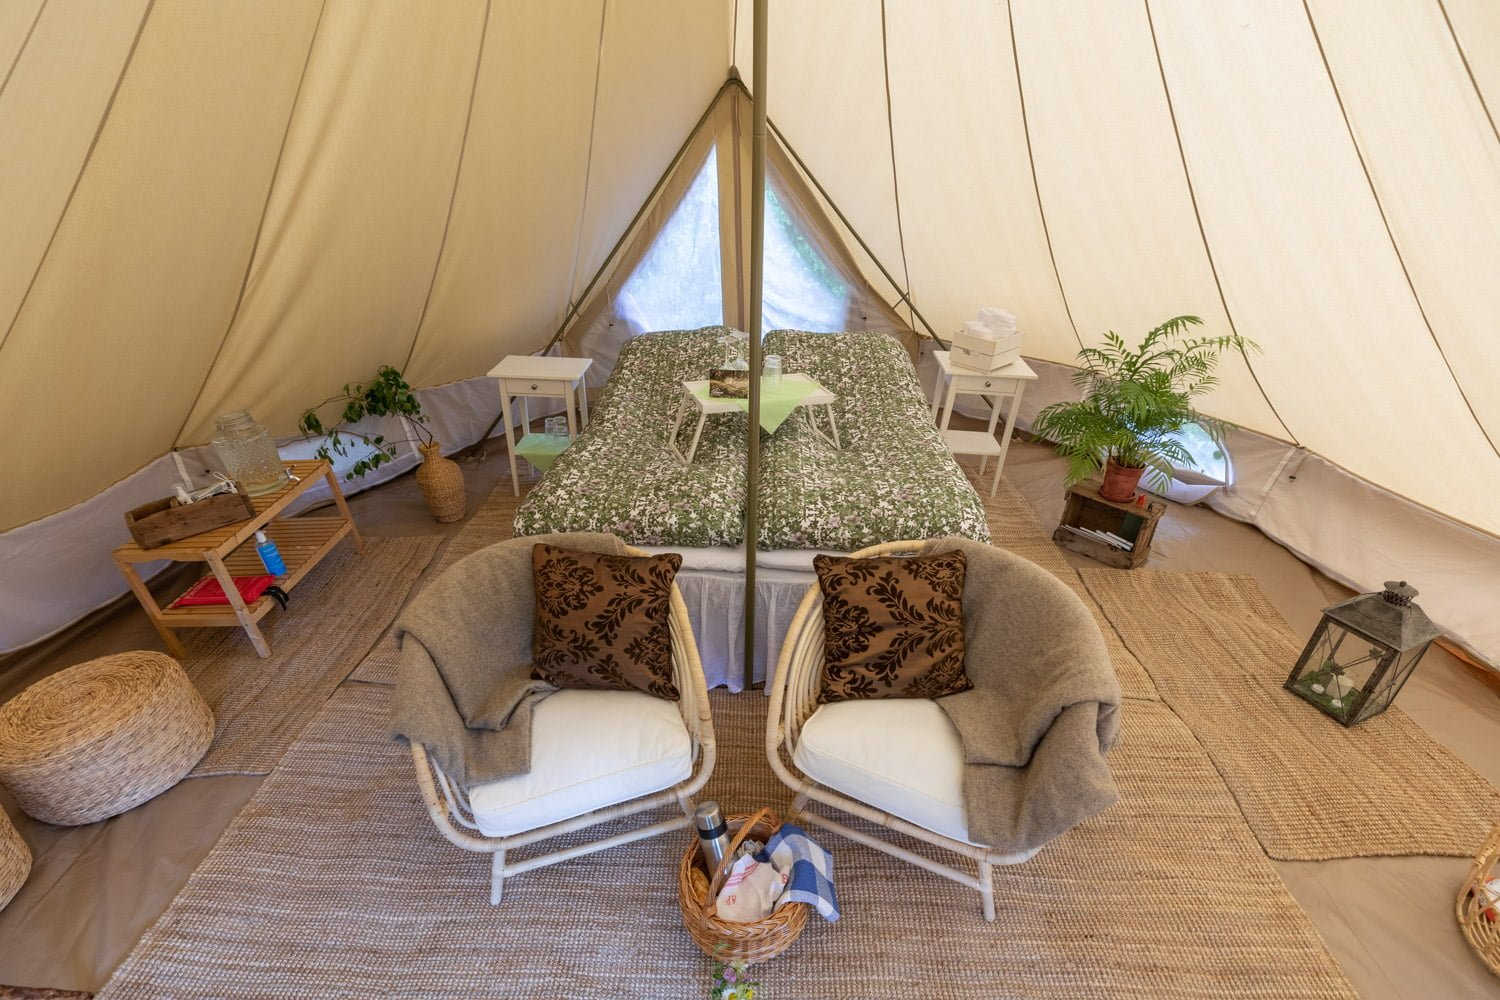 The tent at the glamping in Dalarna - Sweden